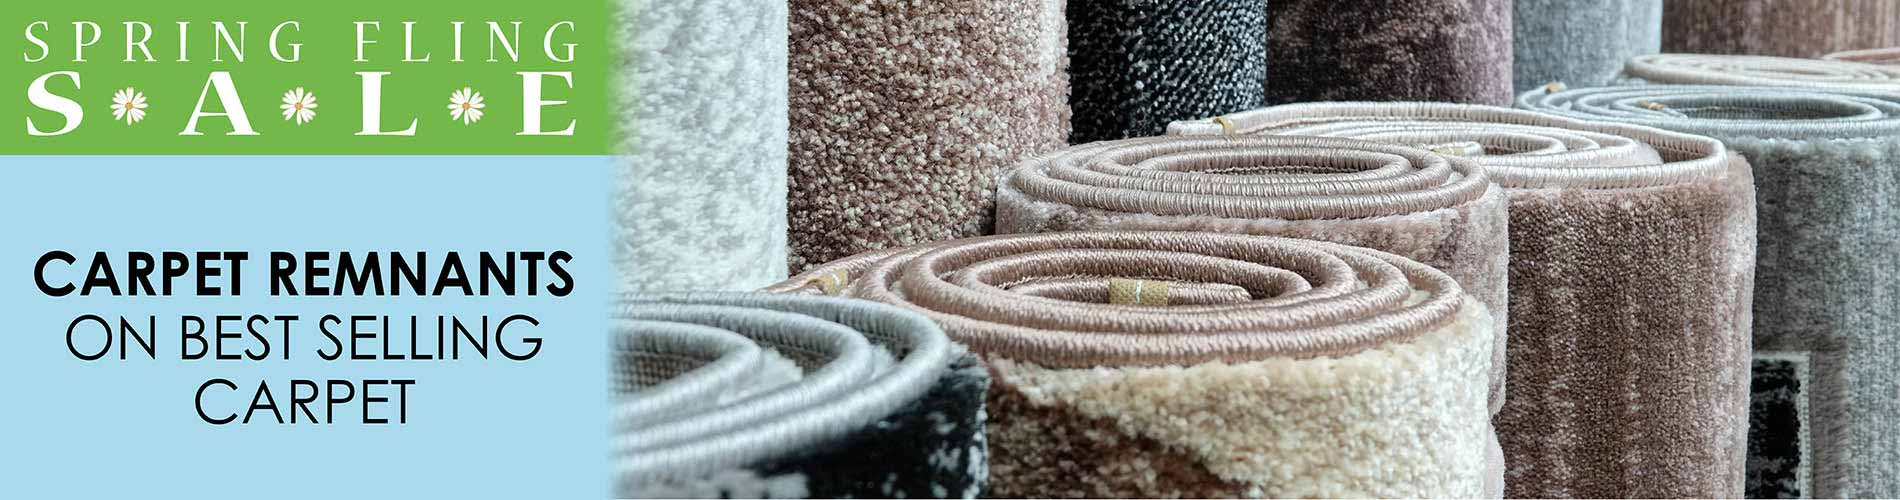 Save on Carpet Remnants during our Spring Fling Sale at Floor Express in Tumwater, WA